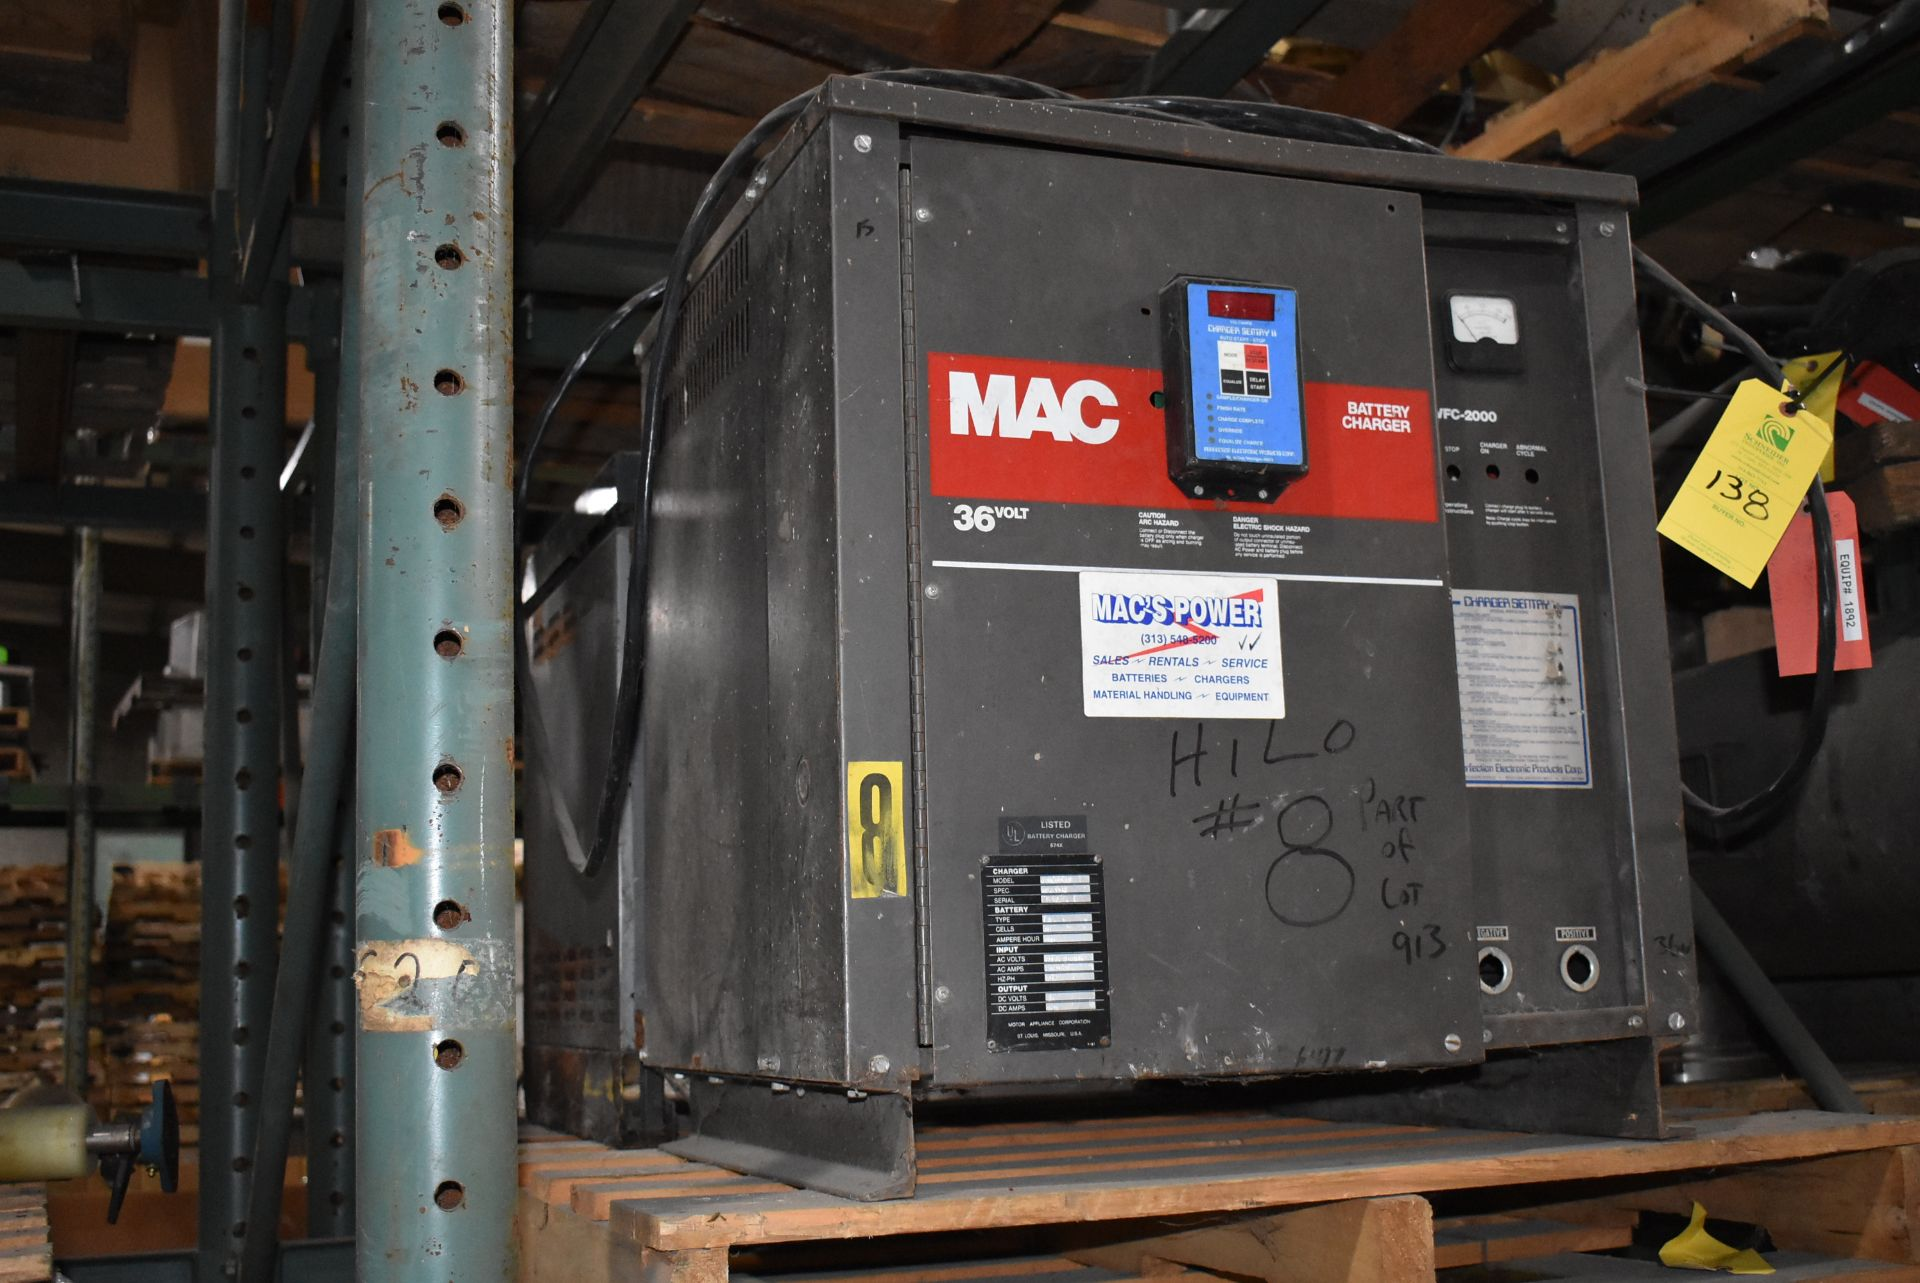 Mac Model #VFC-2000 Electric Battery Charger, 18 Cell/26 Volt, Includes GNC 36 Volt Battery Charger